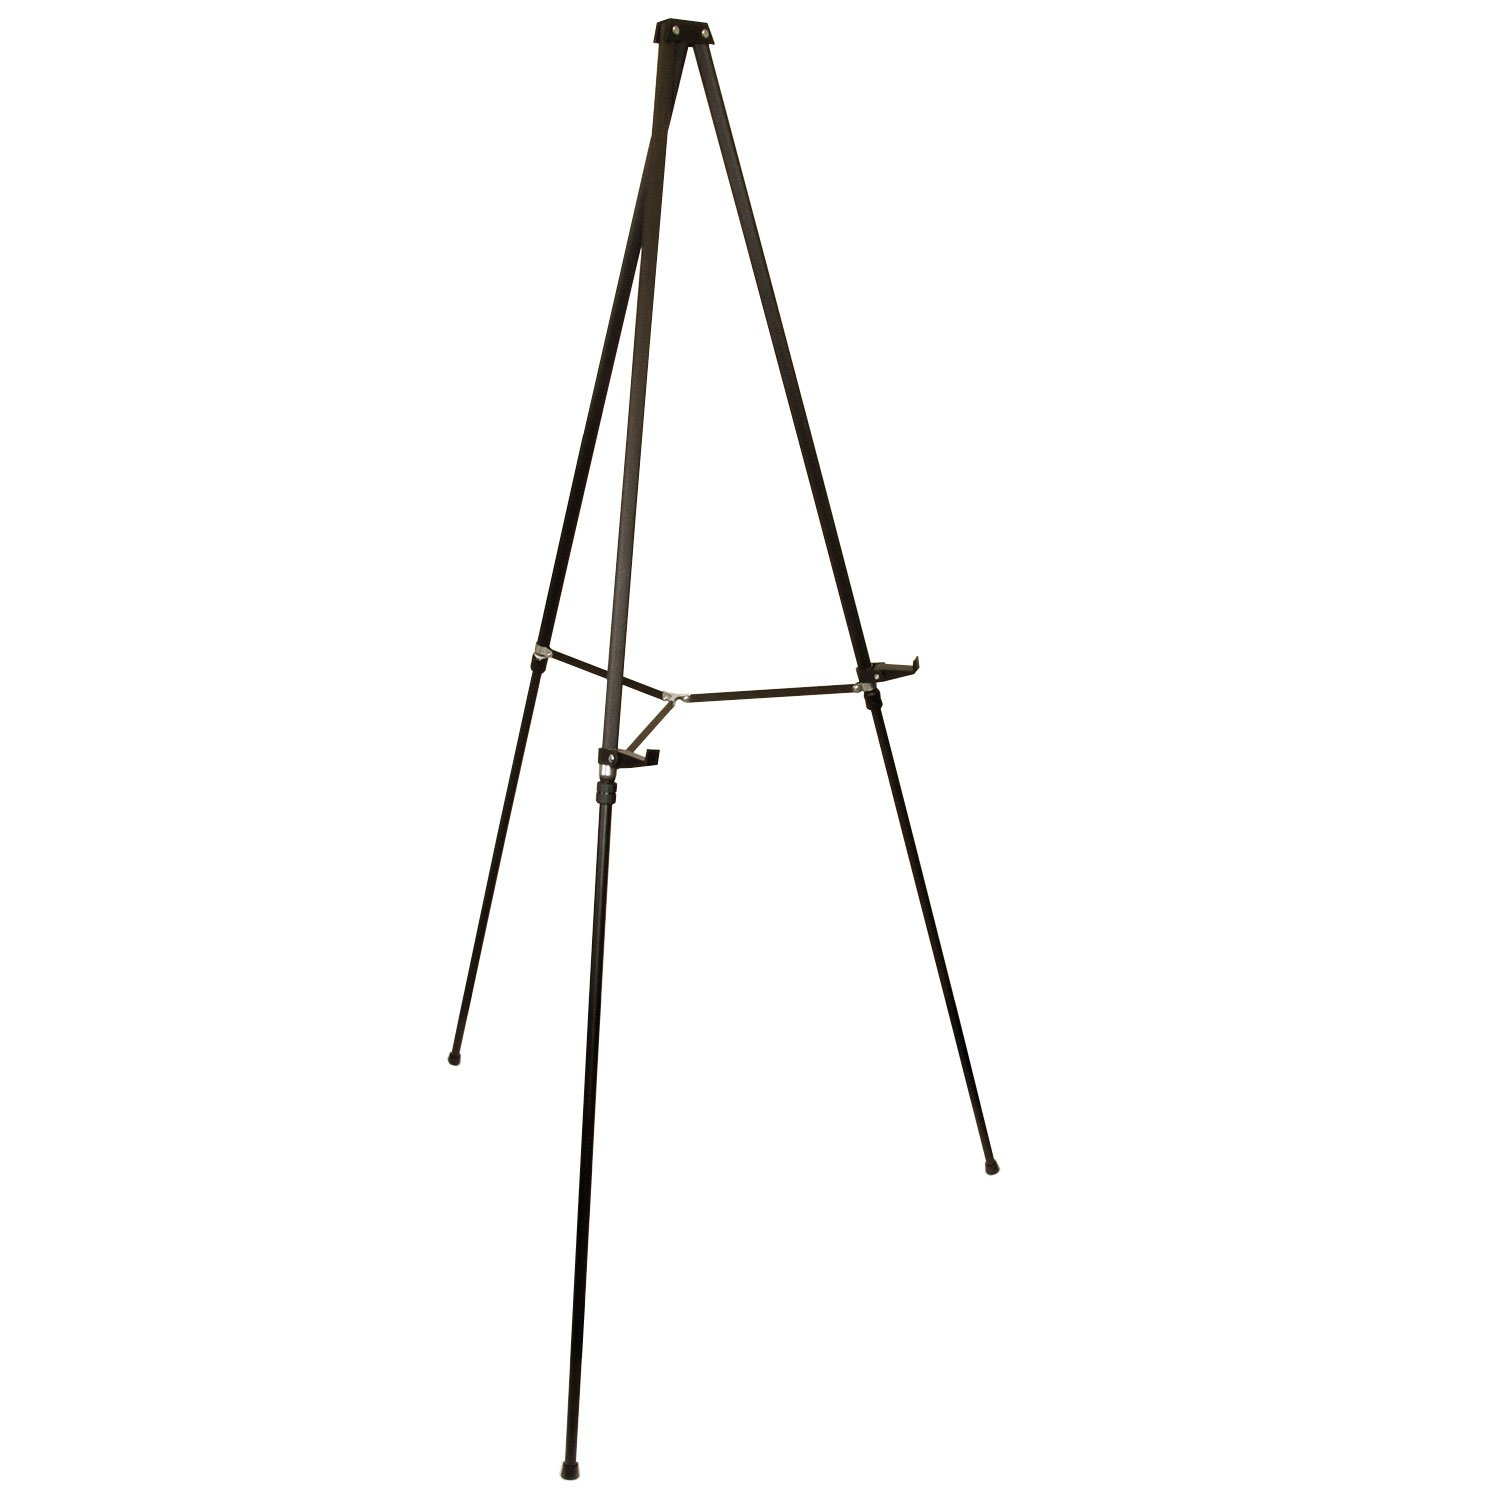 US Art Supply 66 inch Tall Showroom Large Black Aluminum Display & Presentation Floor Easel (1-Easel)